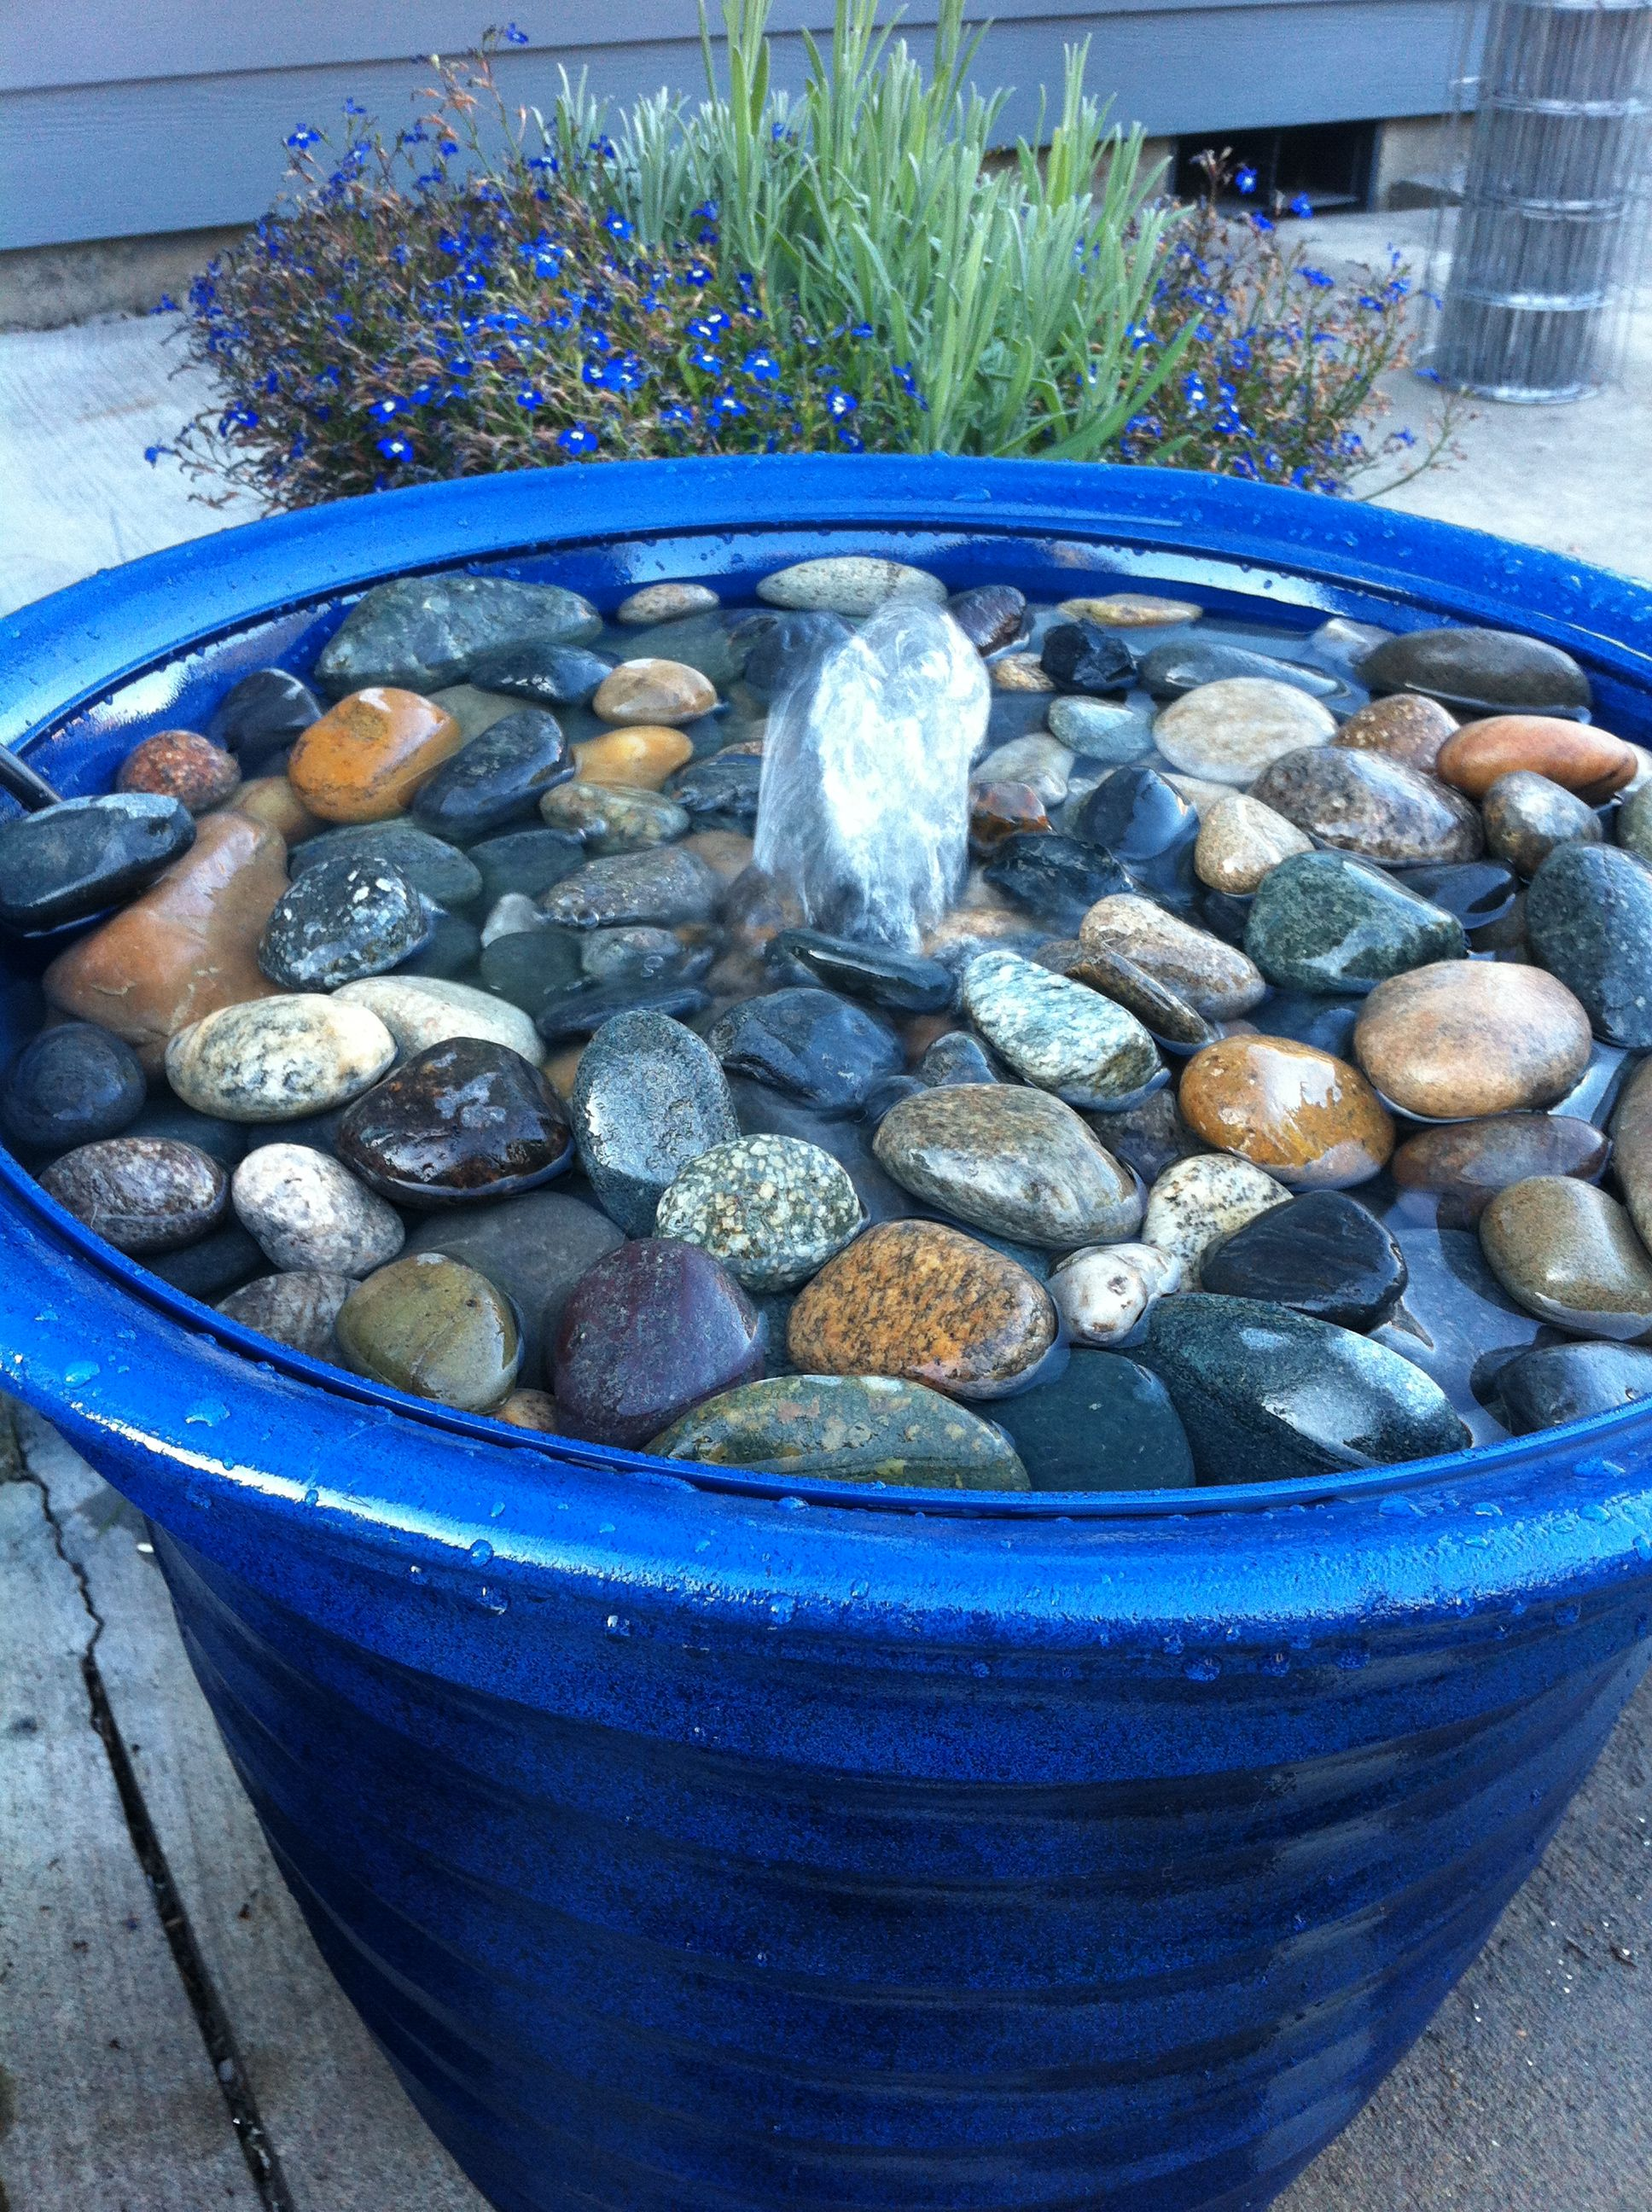 Water fountain pump care - Water Feature Made With A Water Pump In A 5 Gallon Bucket Inside Of A Larger